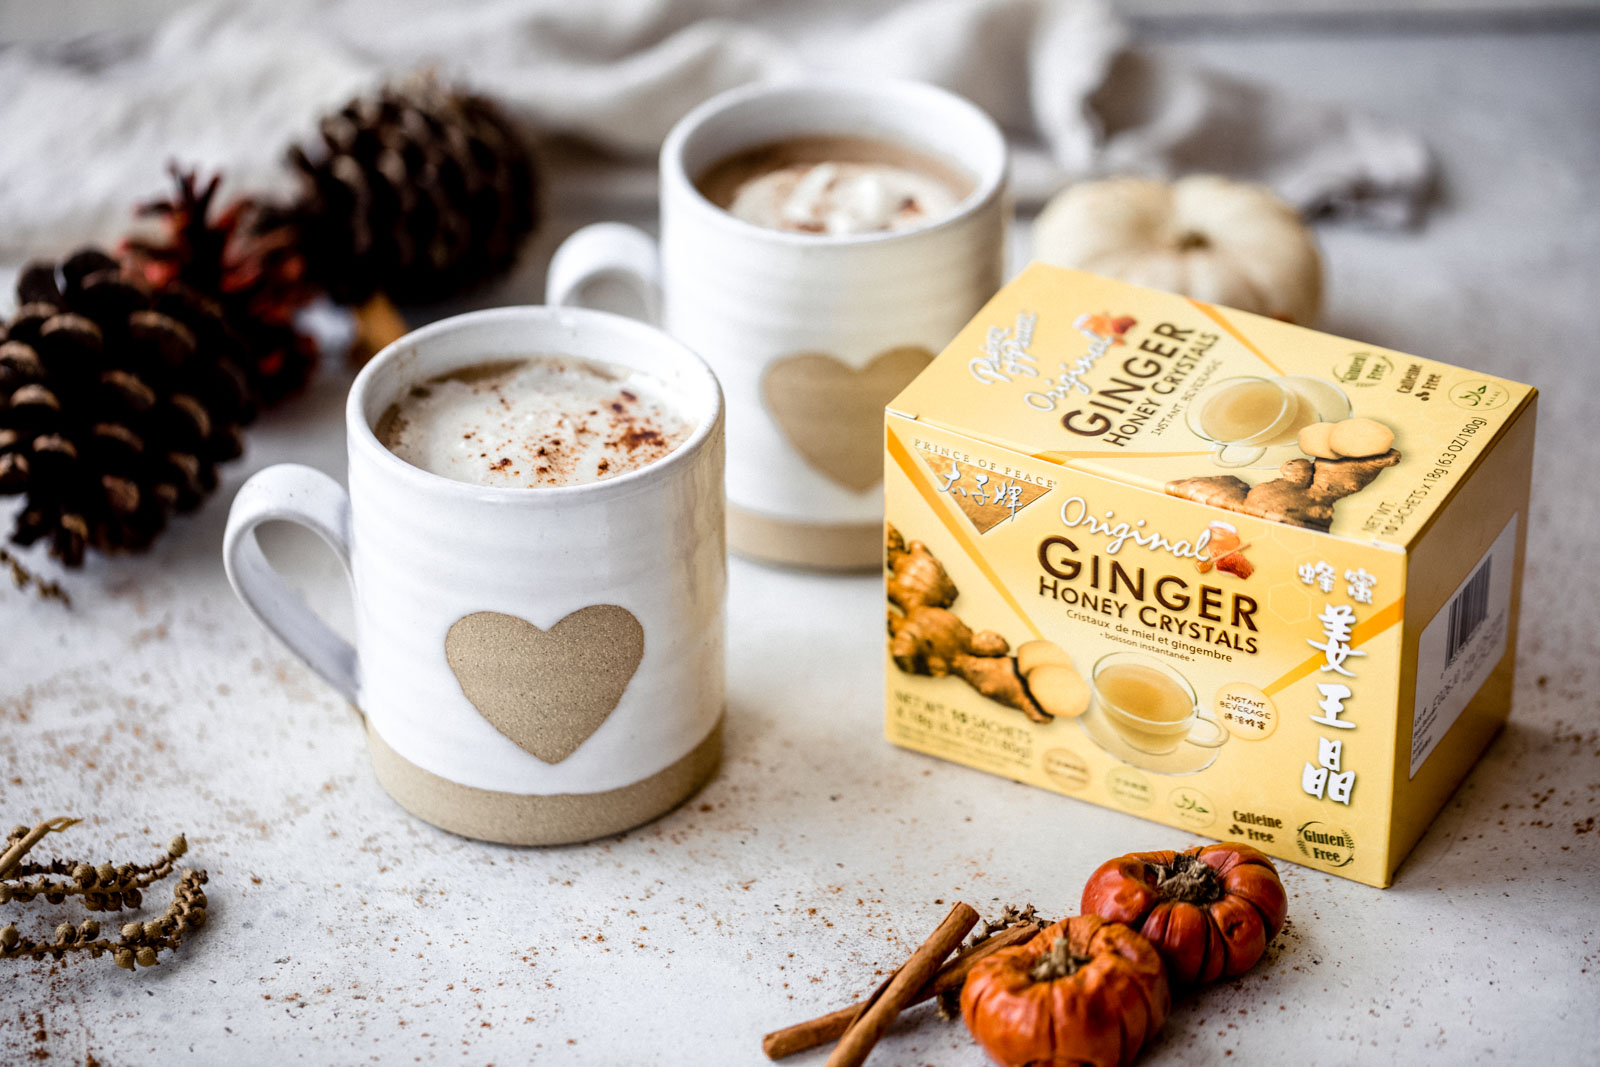 two ginger lattes next to a box of ginger honey crystals